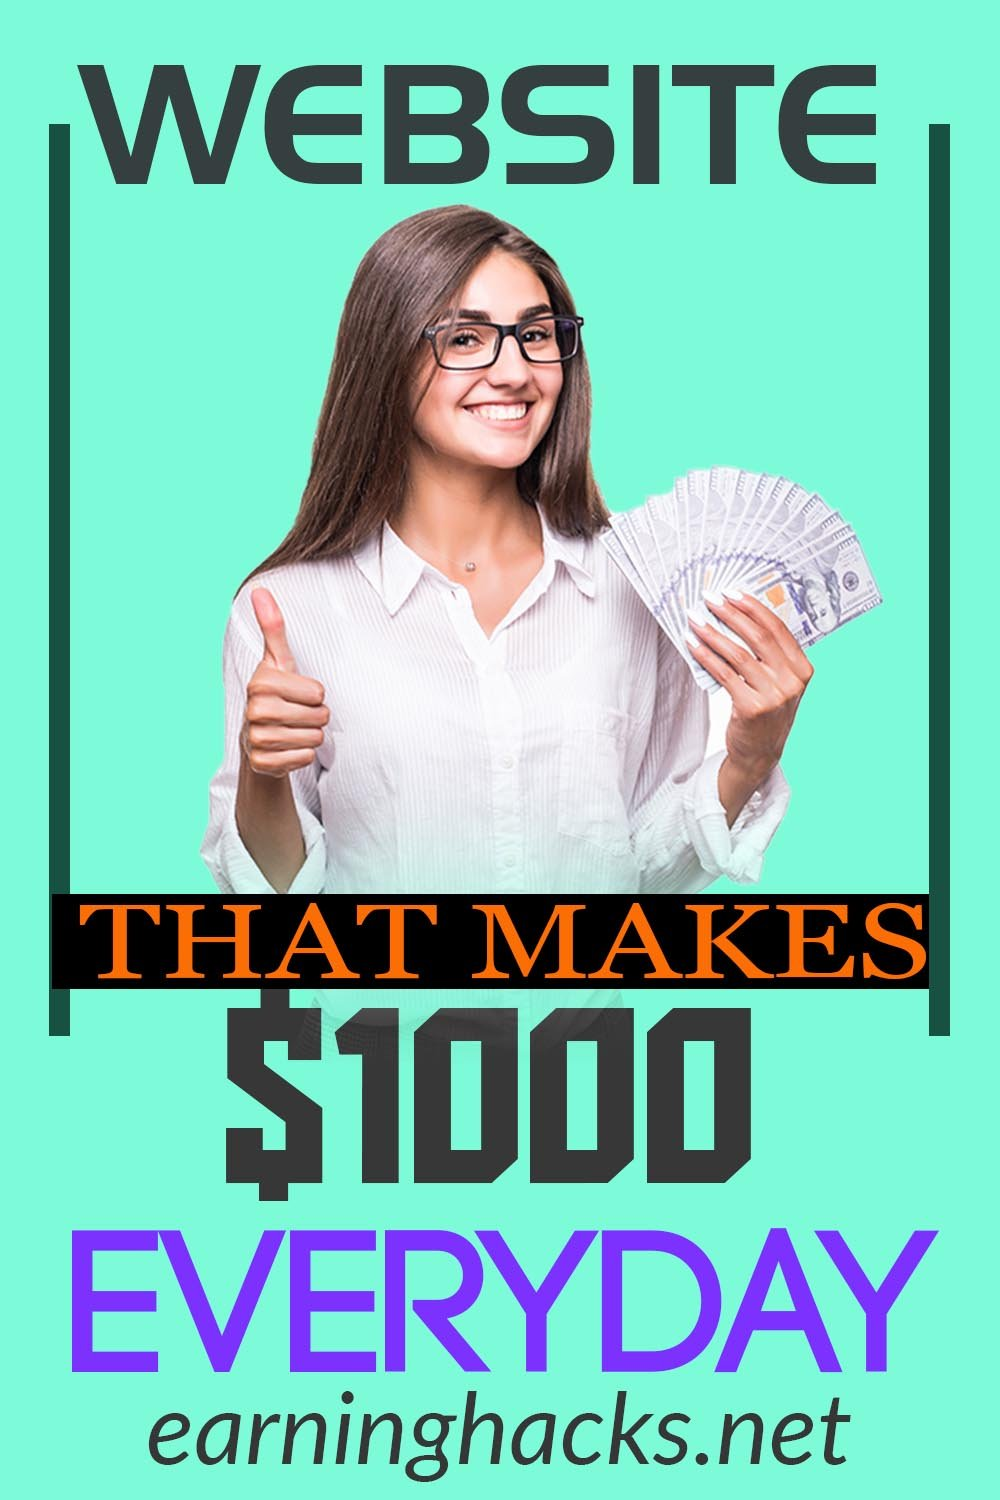 Website That Makes $1000 Every Day